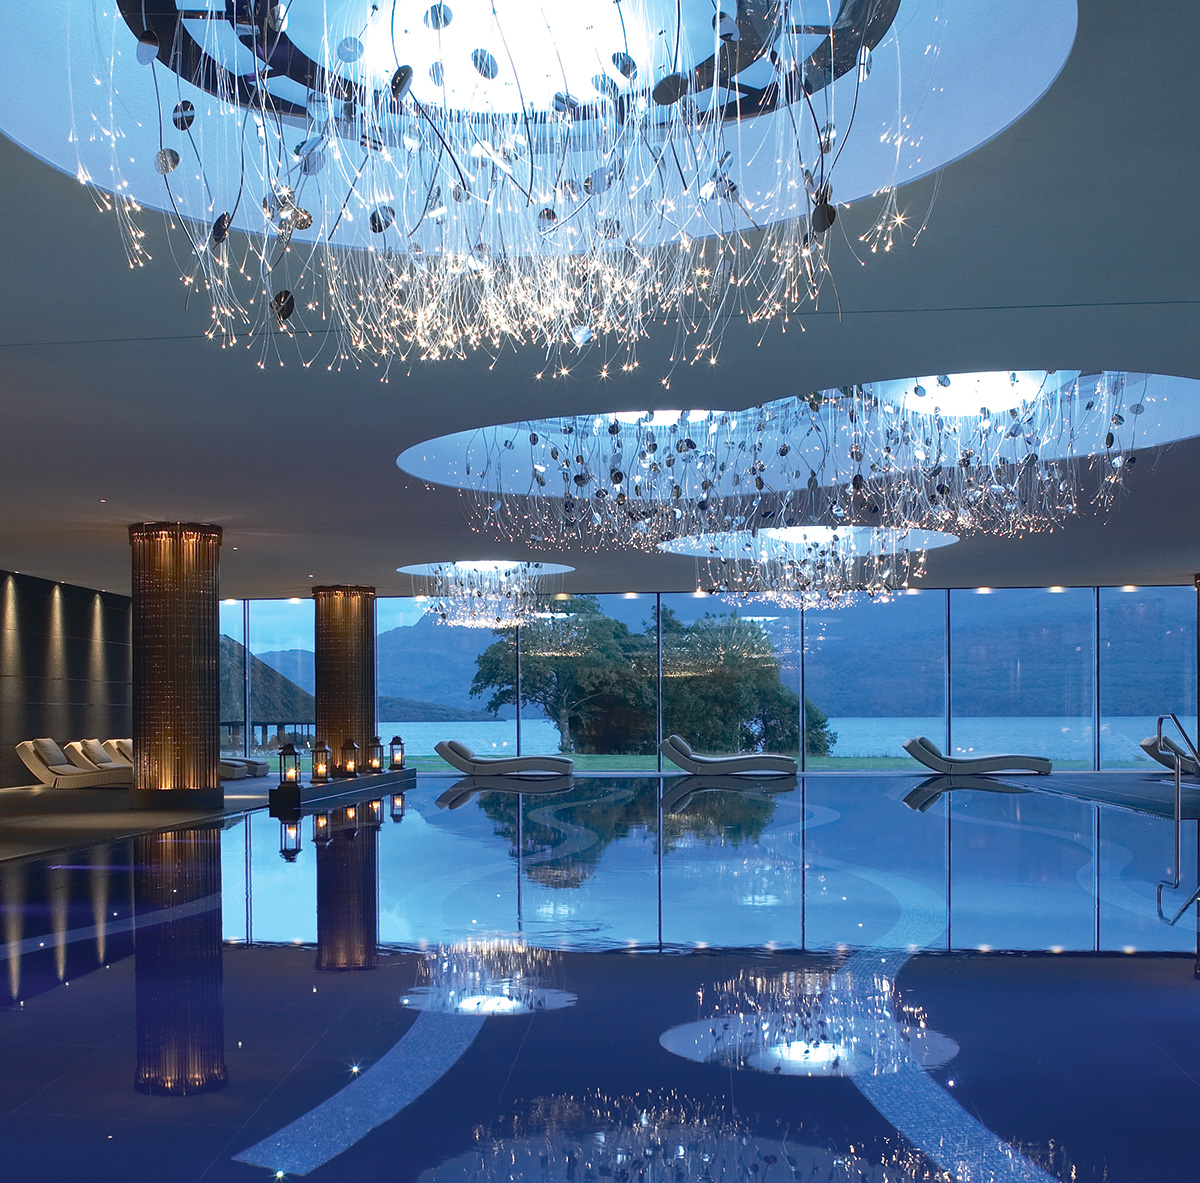 ESPA at The Europe Hotel, Ireland by Design: Hirsch Bedner Associates